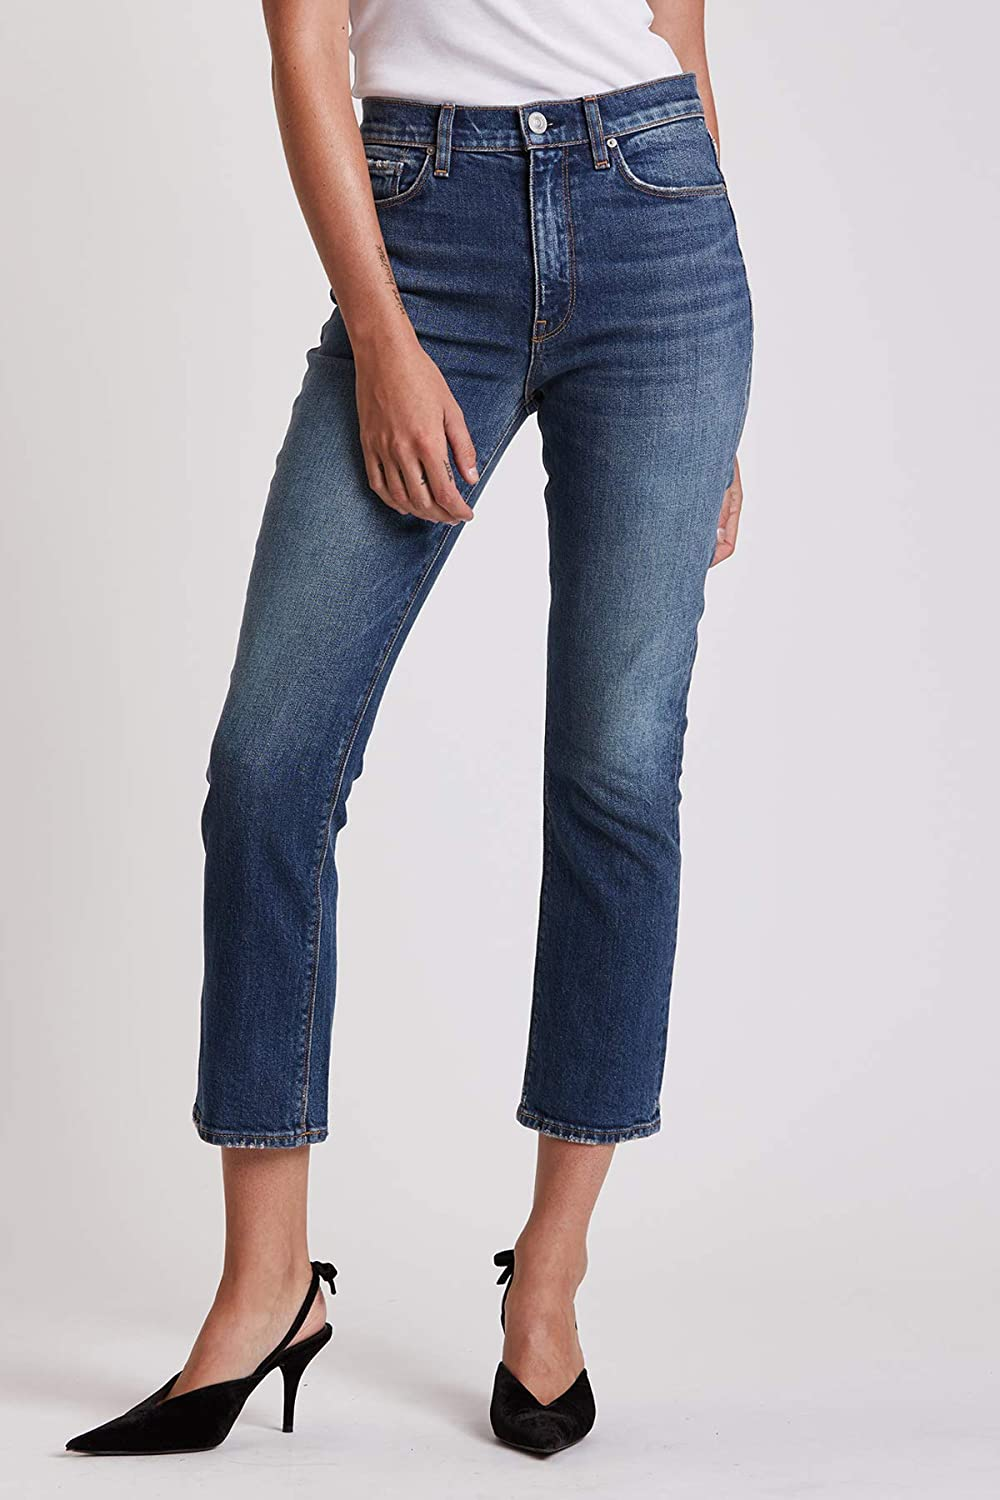 HUDSON Women's Holly High Rise Bootcut Crop Jean